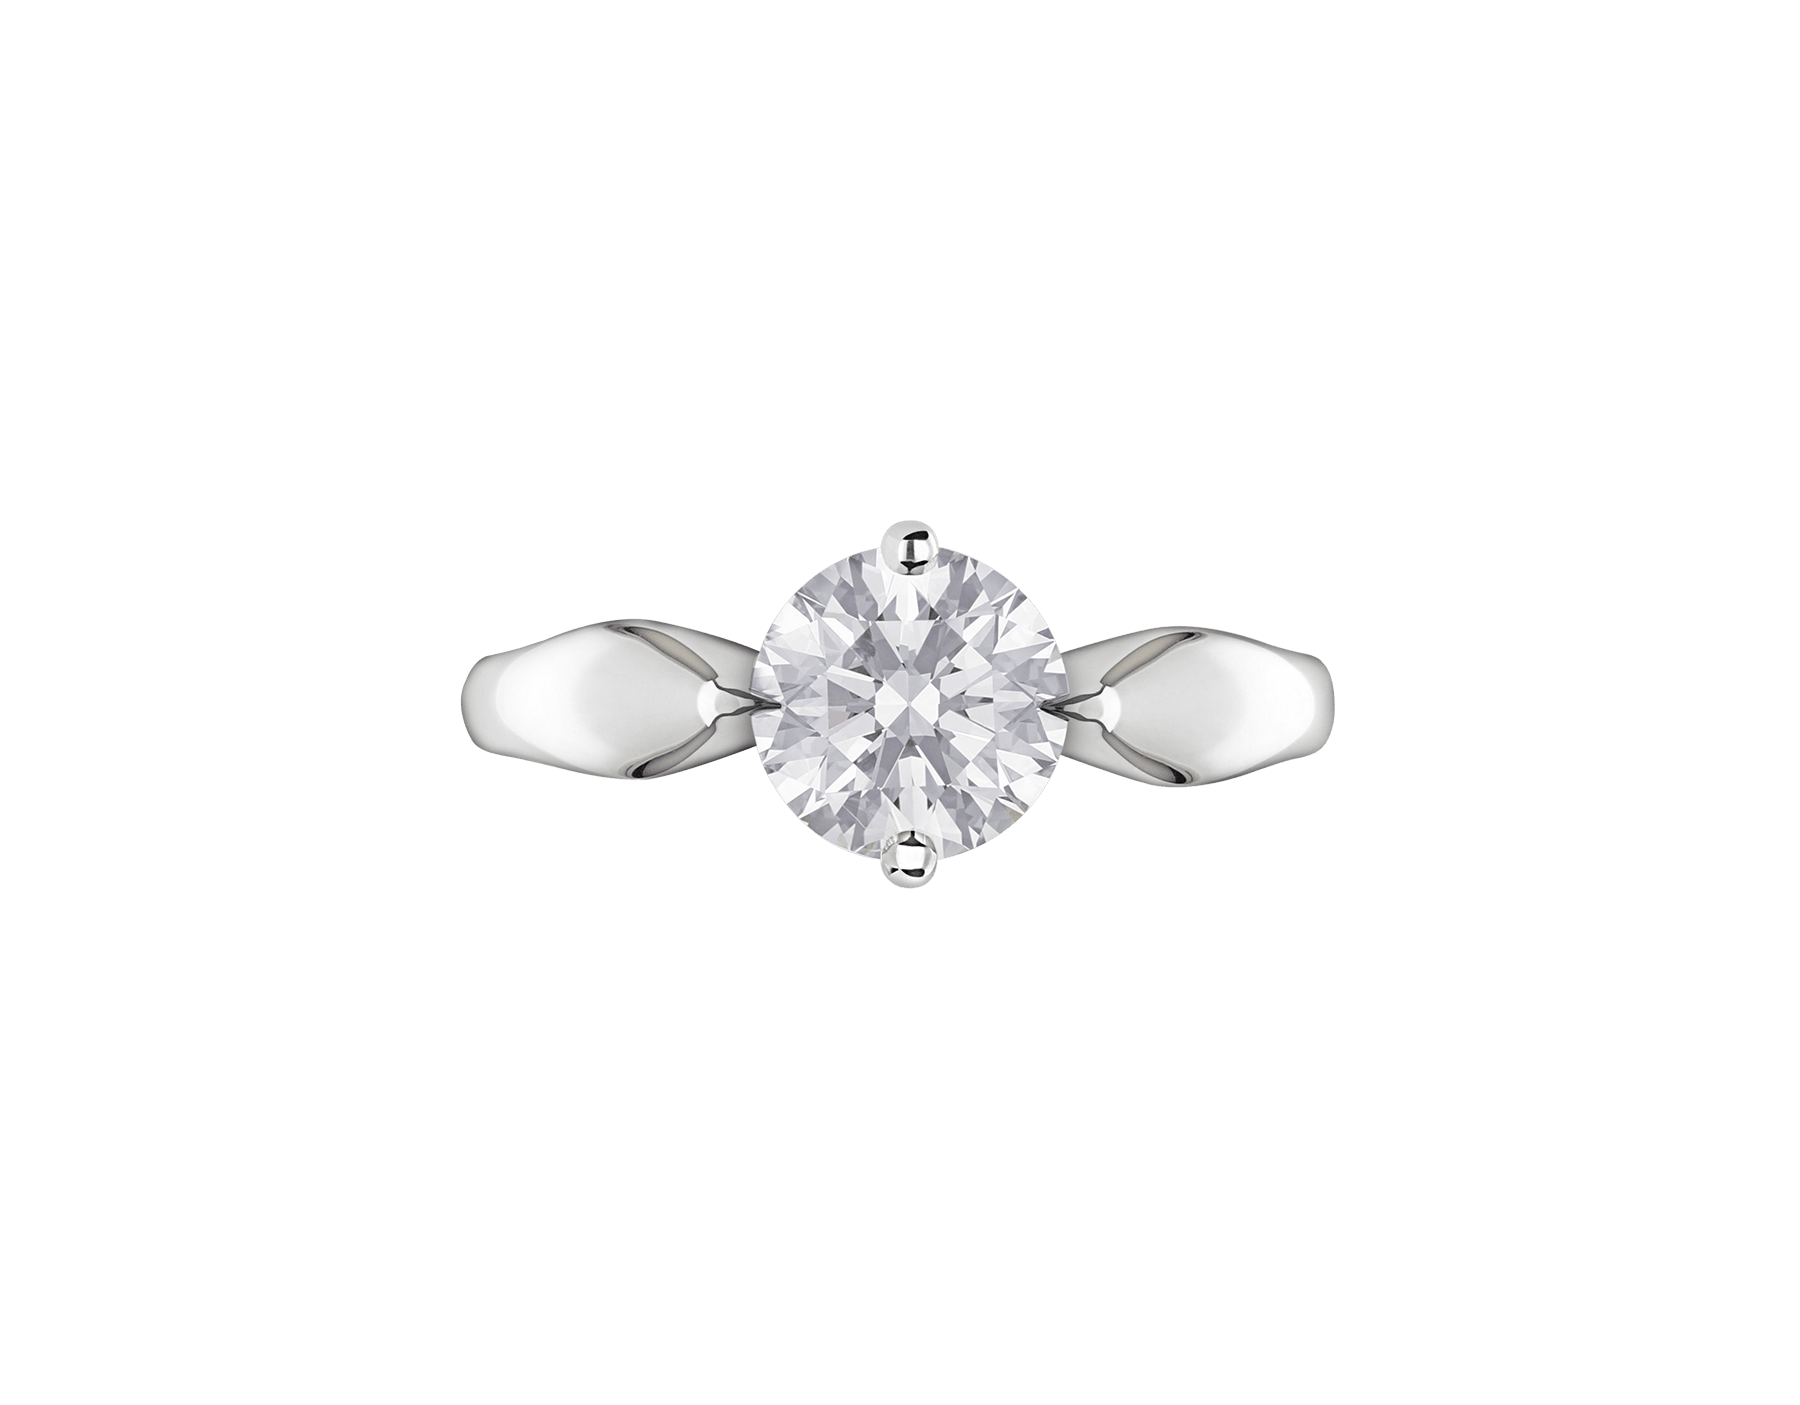 Dedicata a Venezia: Torcello platinum ring with a round brilliant cut diamond 343723 image 4